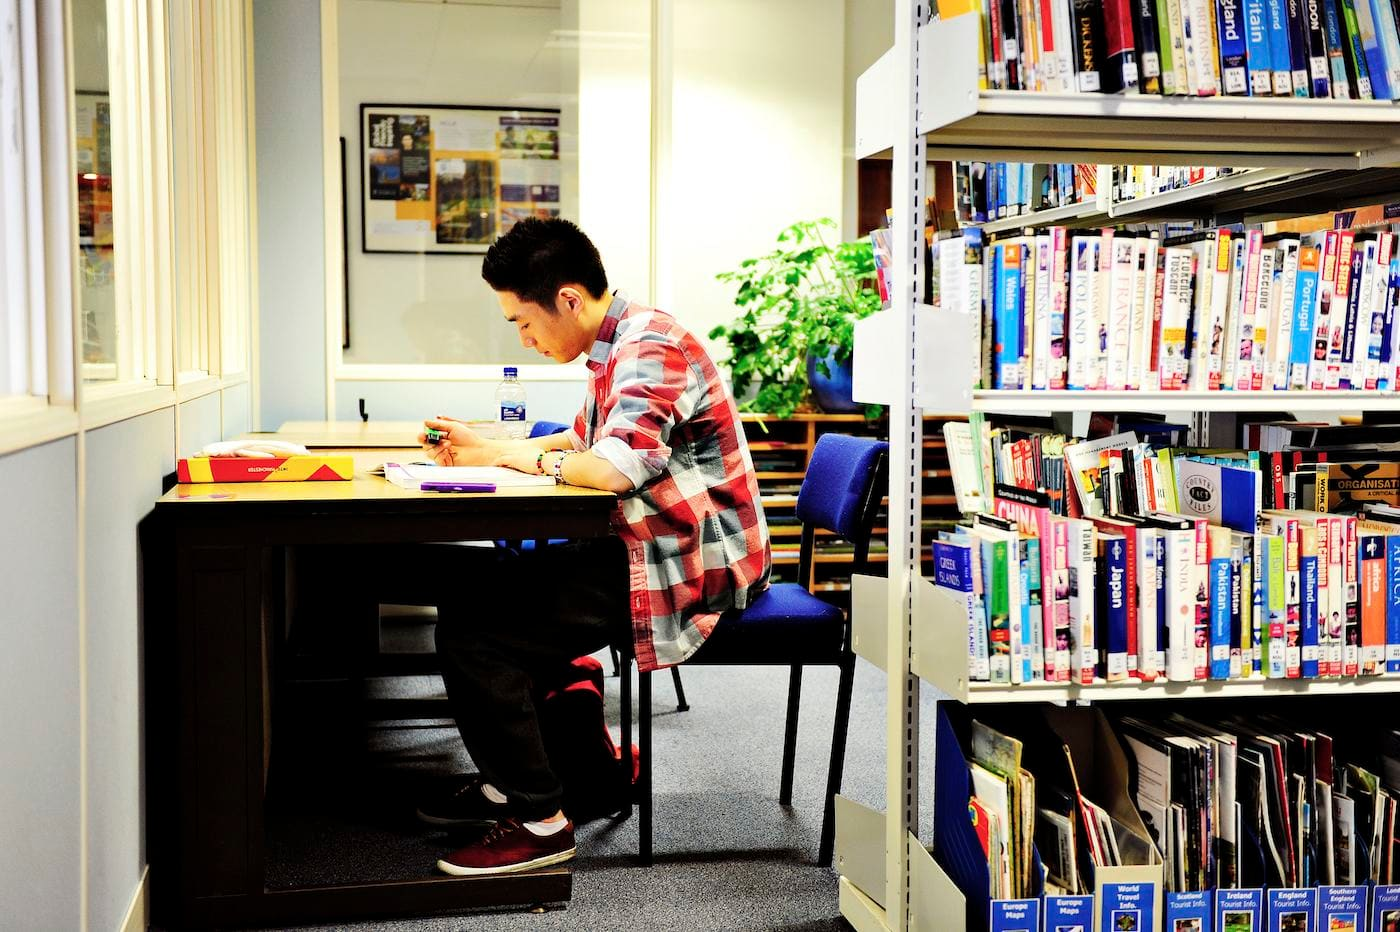 Your Learning Resource Centre offers a range of study support materials